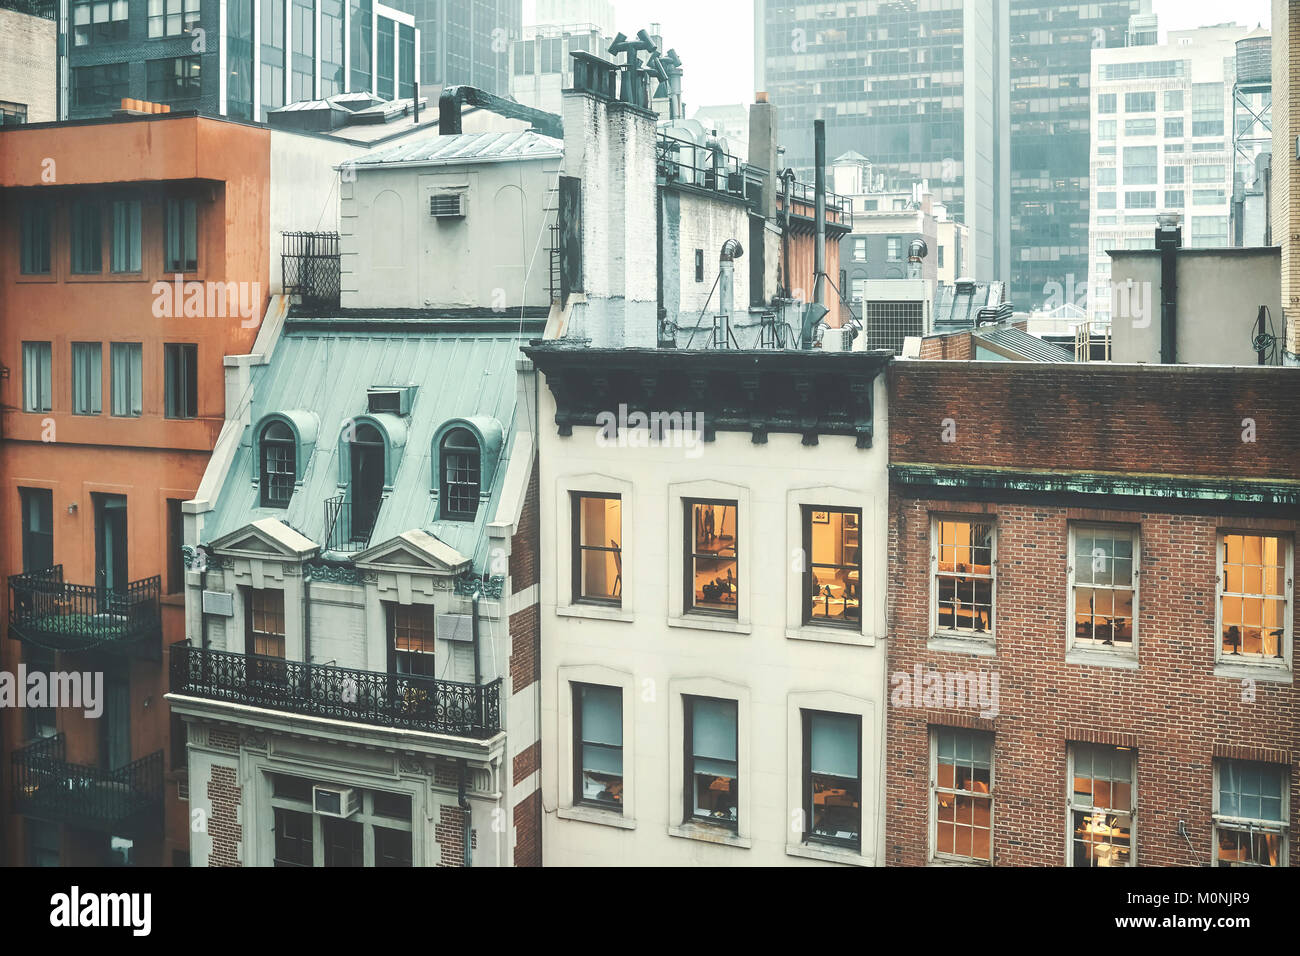 Retro toned picture of old buildings in Midtown Manhattan on a rainy day, New York, USA. - Stock Image